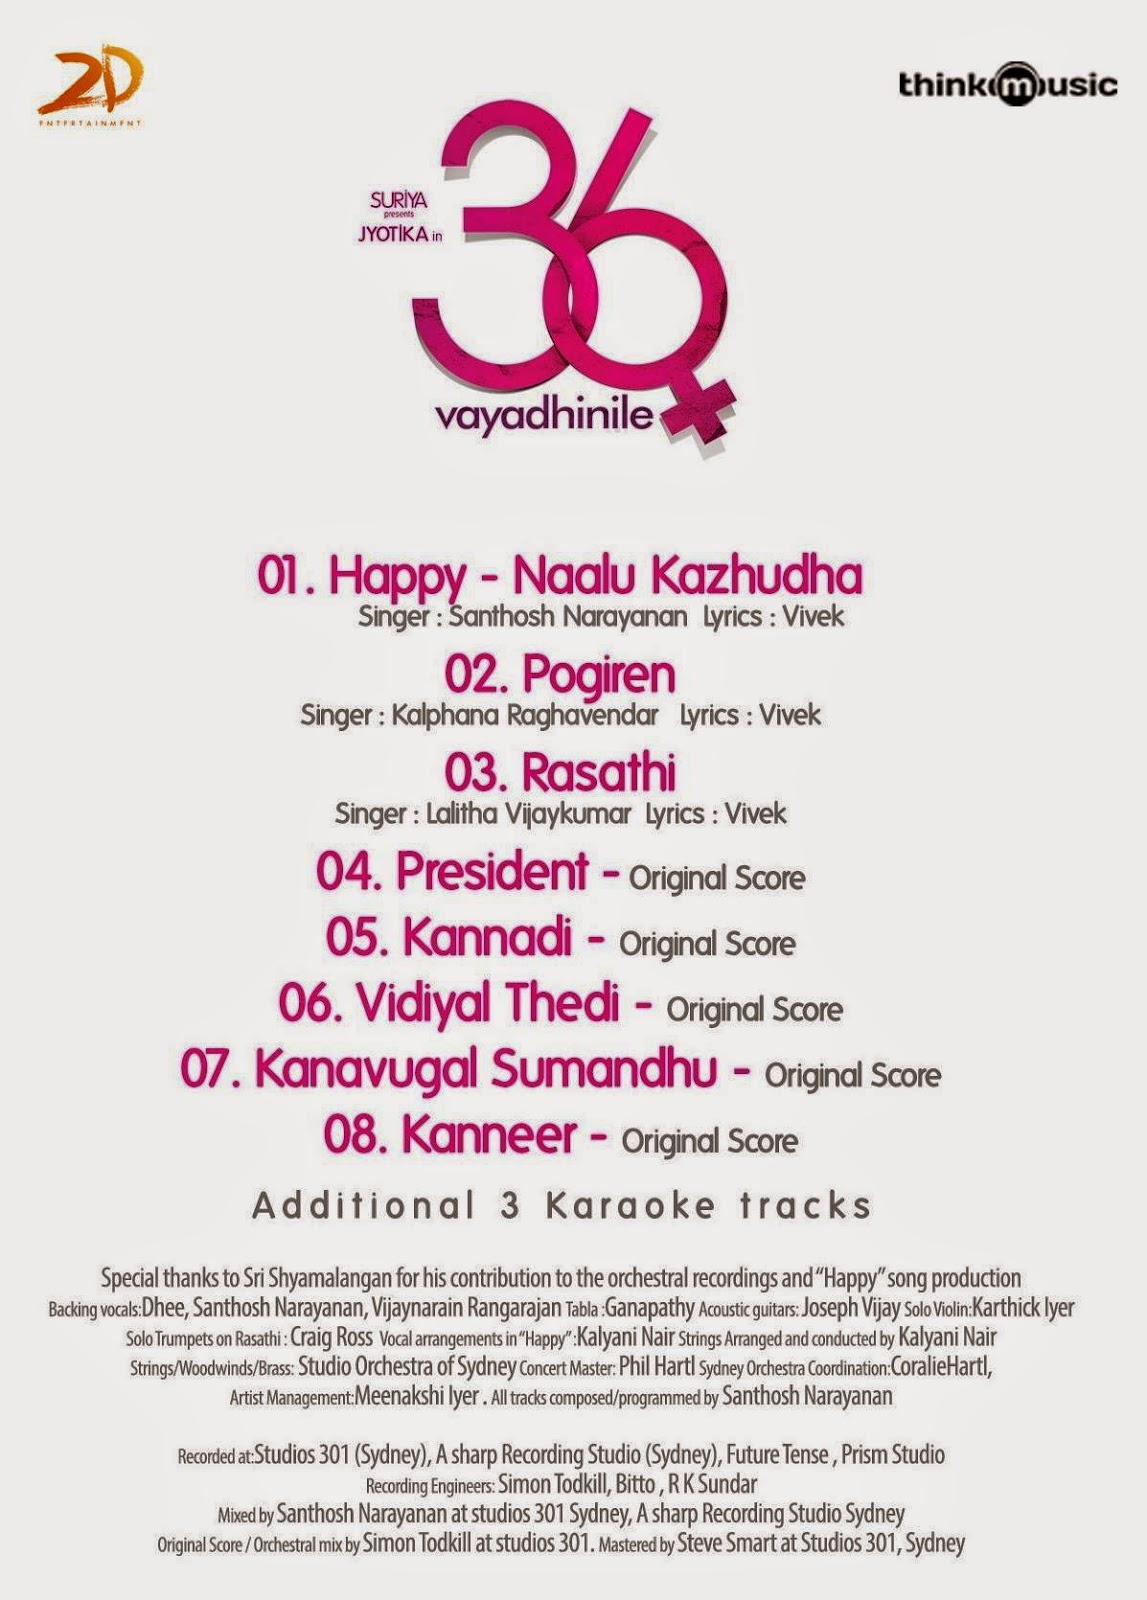 Jyothika's 36 Vayadhinile Tamil Movie Official Audio Track List